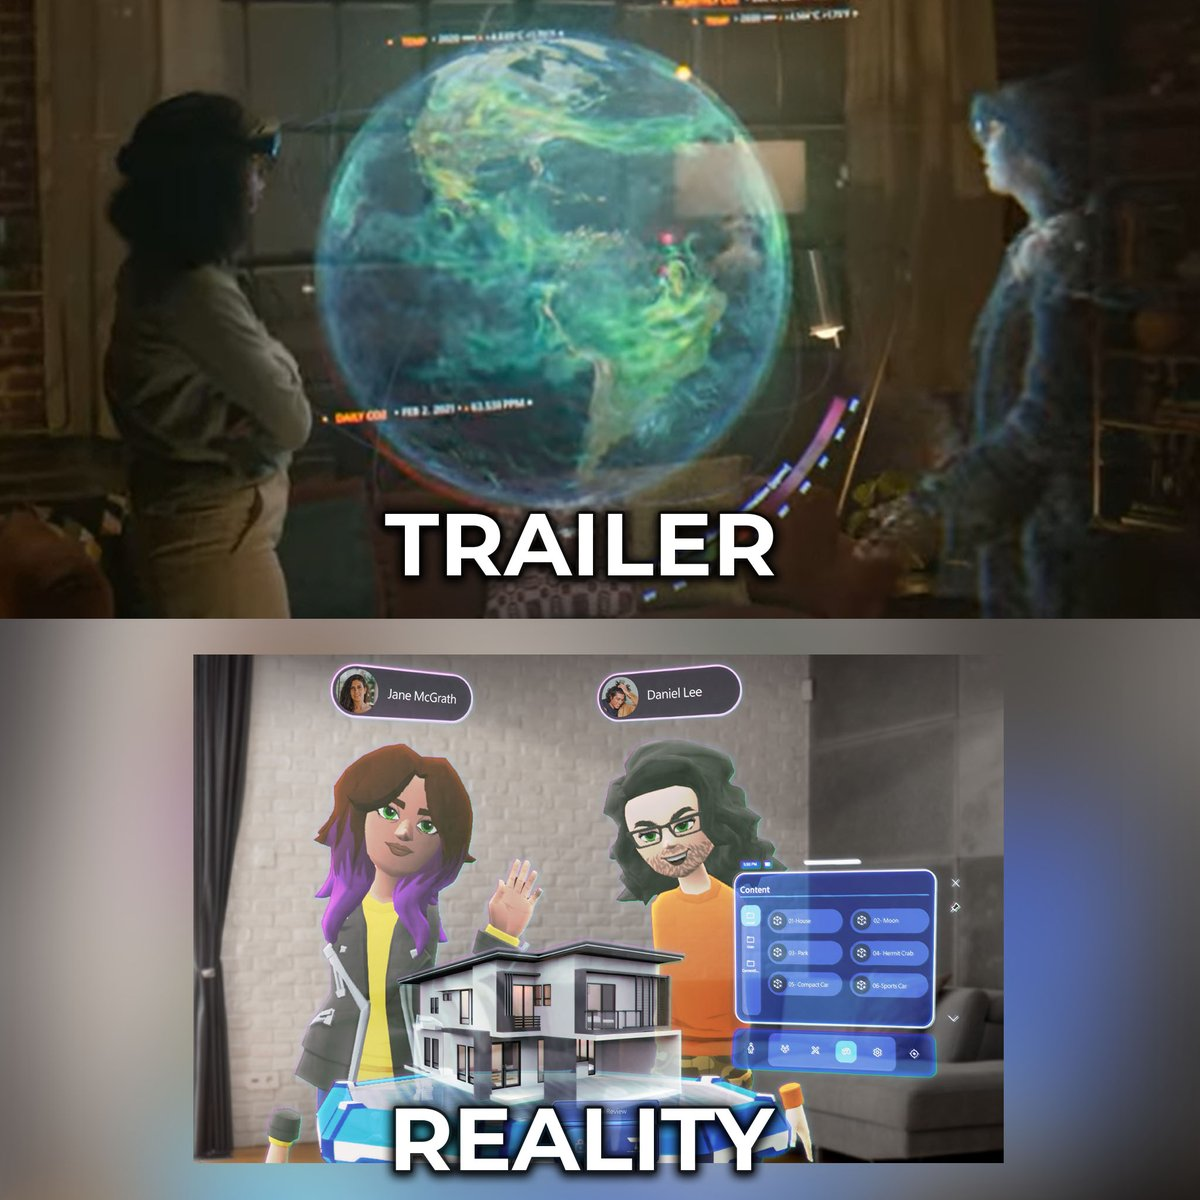 Microsoft Mesh's announcement trailer is a highly misleading CG concept video that isn't representative of what launched whatsoever.  I love the HoloLens, but we really need to stop with these CG trailers. It's setting false expectations & confusing EVERYONE.